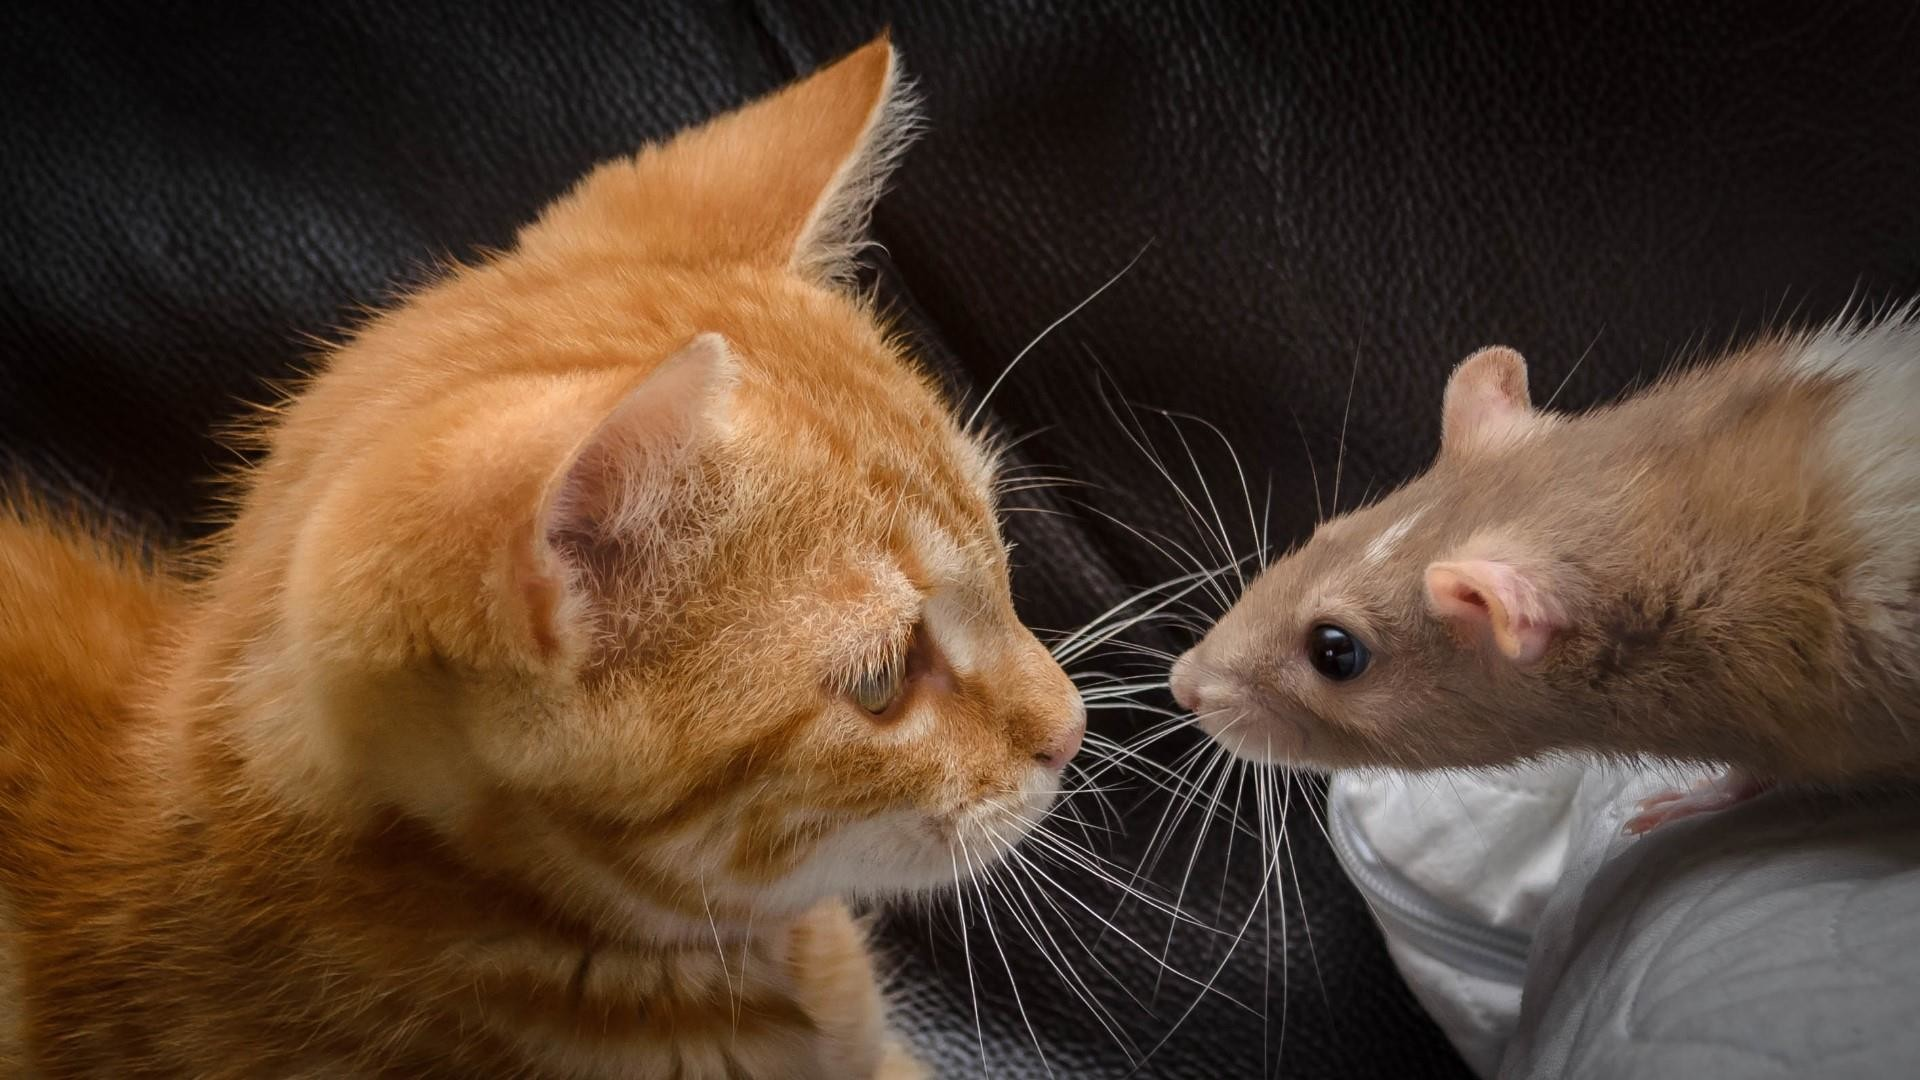 Res: 1920x1080, Funny Rat And Cat Wallpaper   Wallpaper Studio 10   Tens of thousands HD  and UltraHD wallpapers for Android, Windows and Xbox